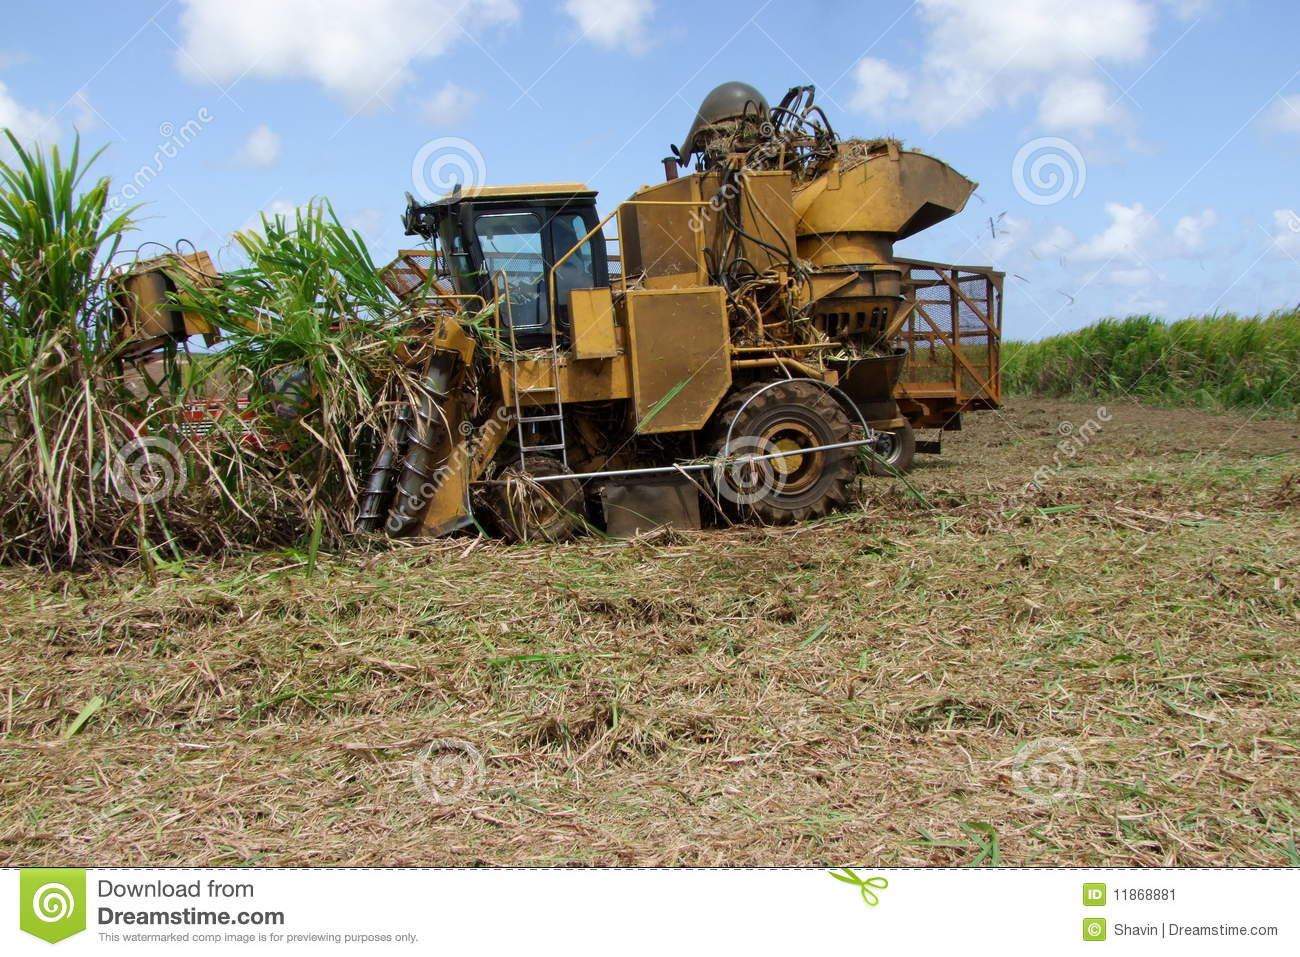 Sugar Cane Harvest by Machine